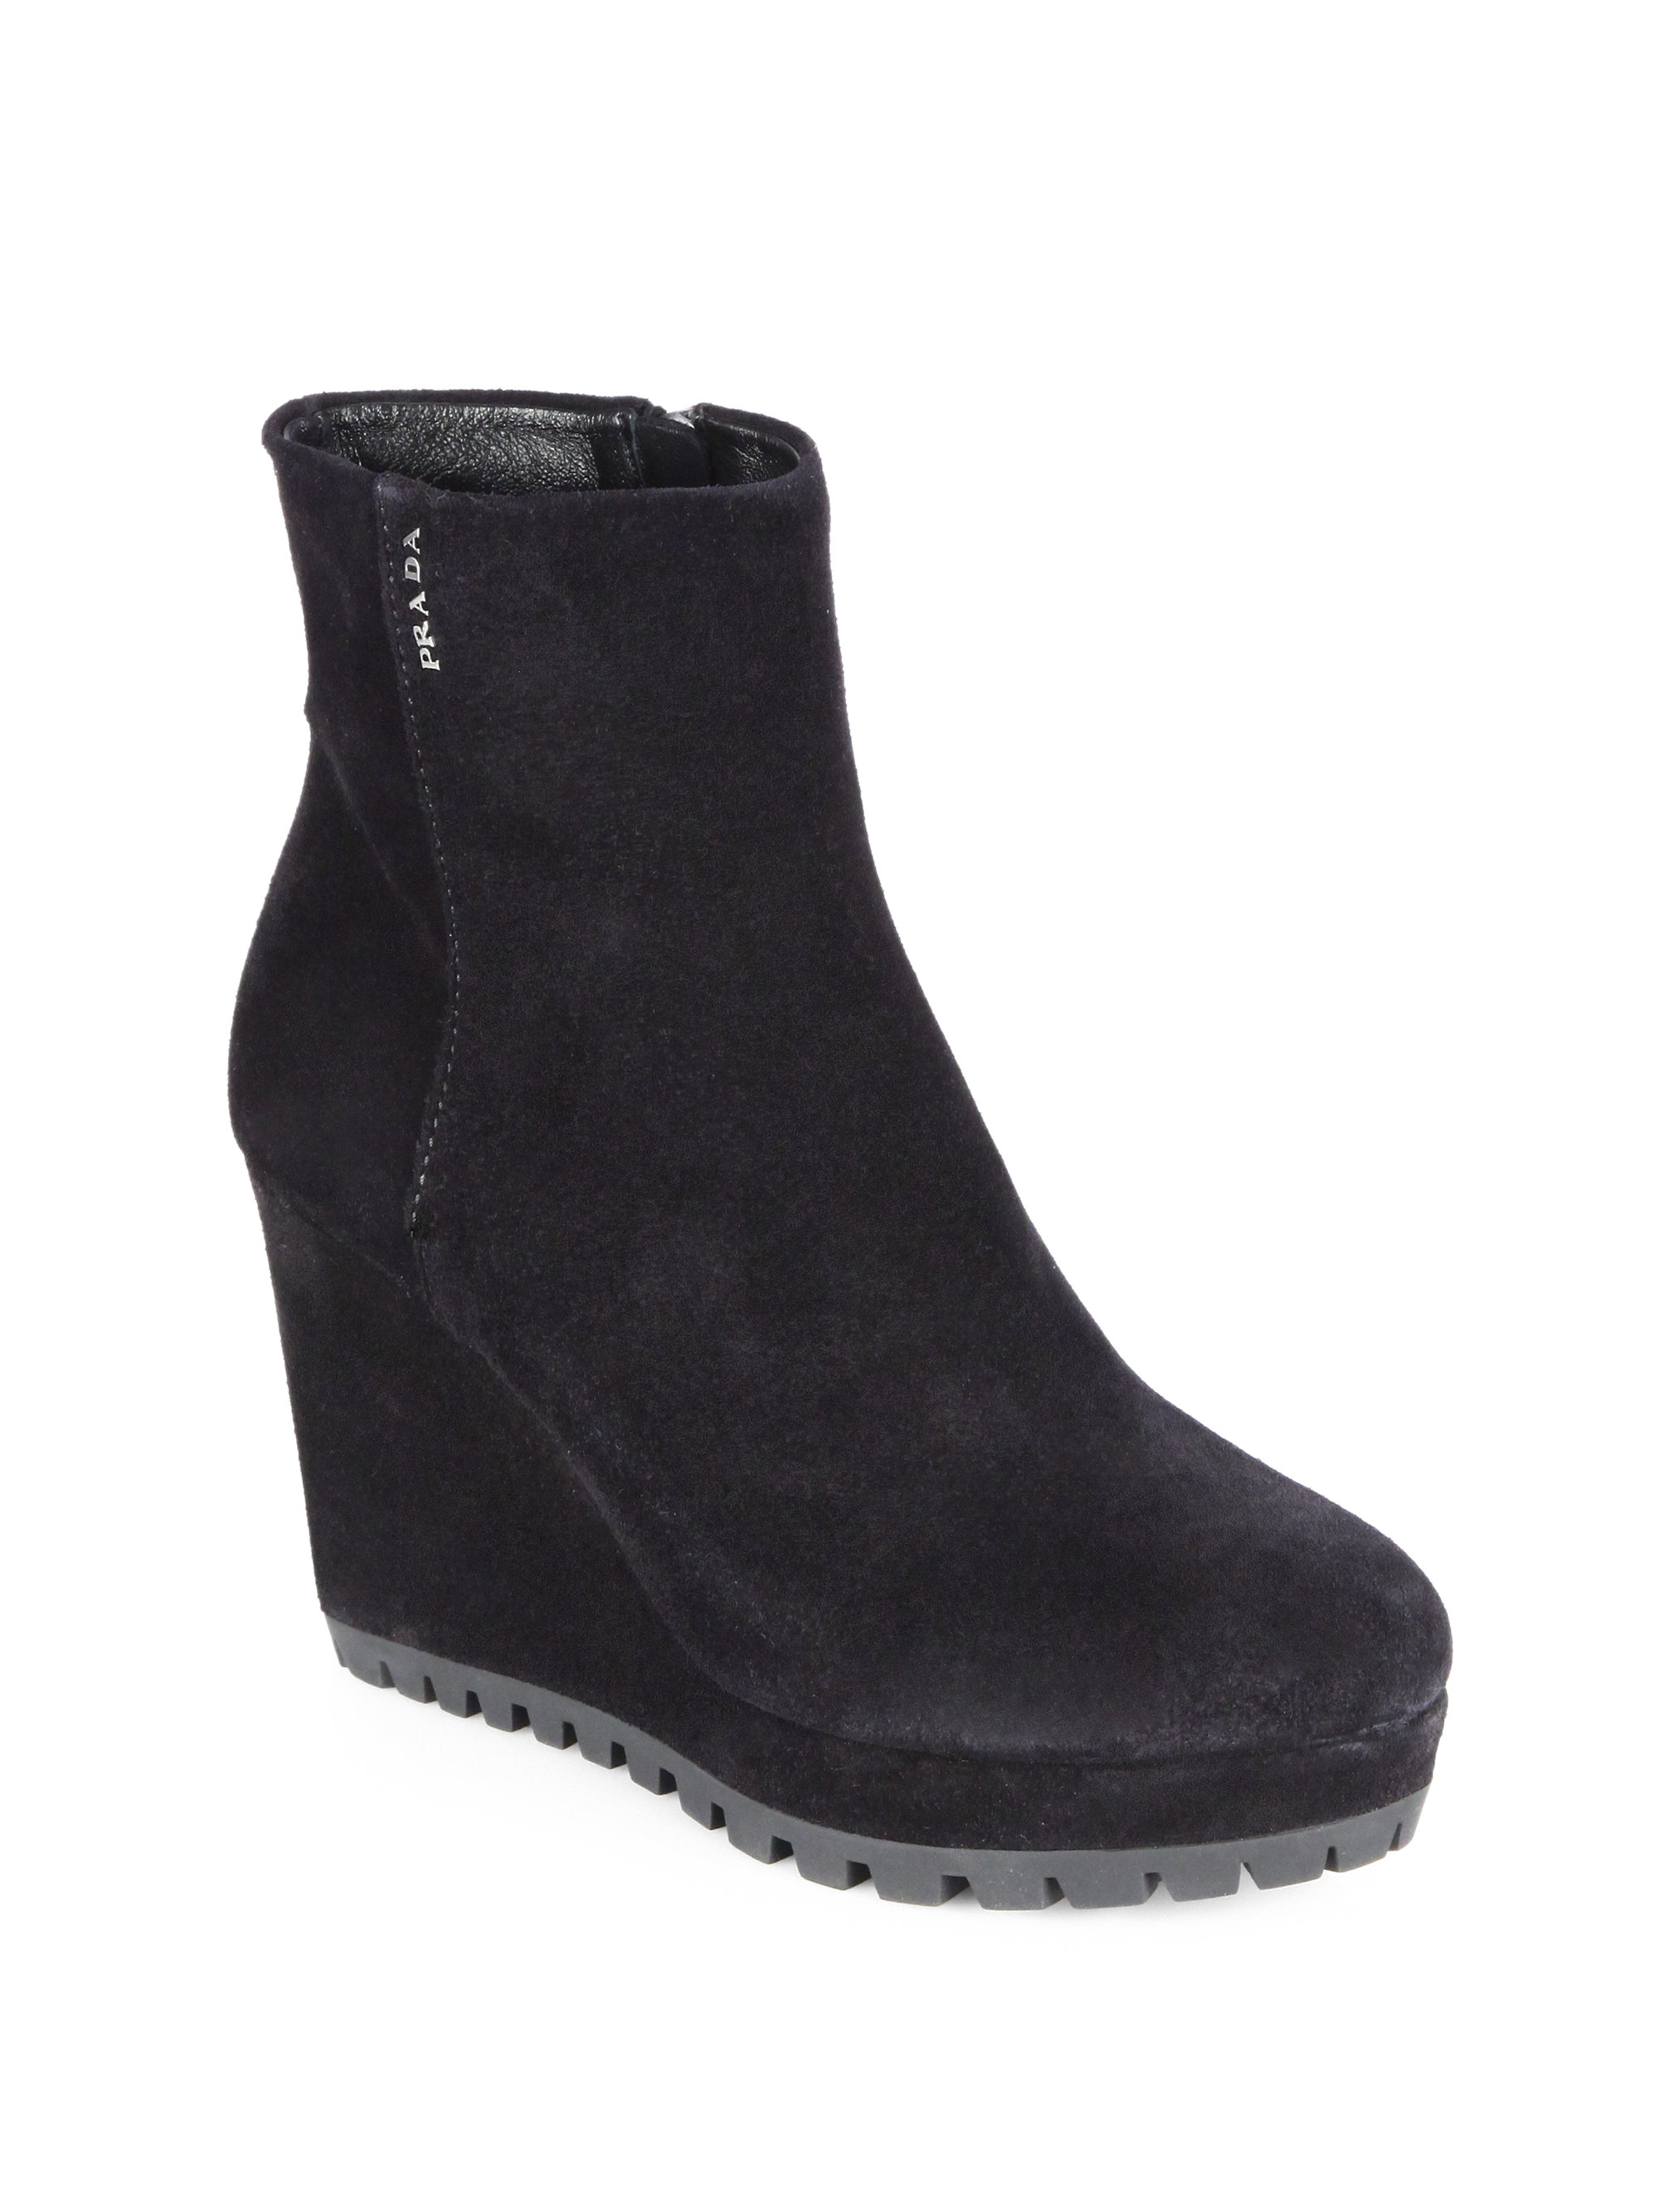 Prada Suede Wedge Ankle Boots in Black | Lyst